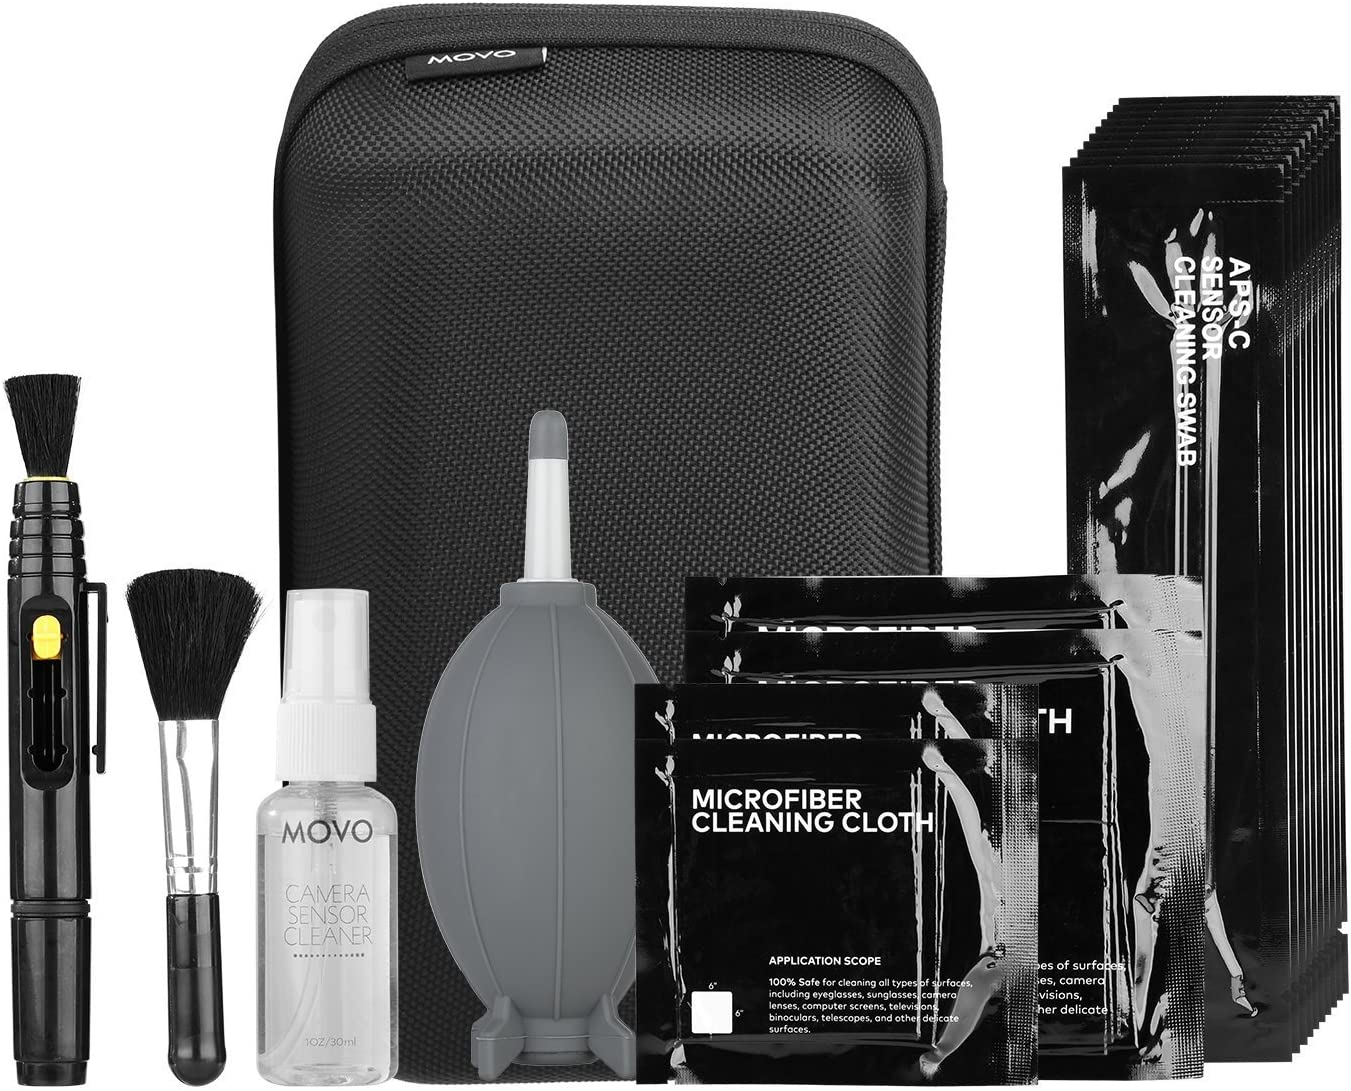 Movo Deluxe Essentials DSLR Camera Cleaning Kit with 10 APS-C Cleaning Swabs, Sensor Cleaning Fluid, Rocket Air Blower, Lens Pen,...